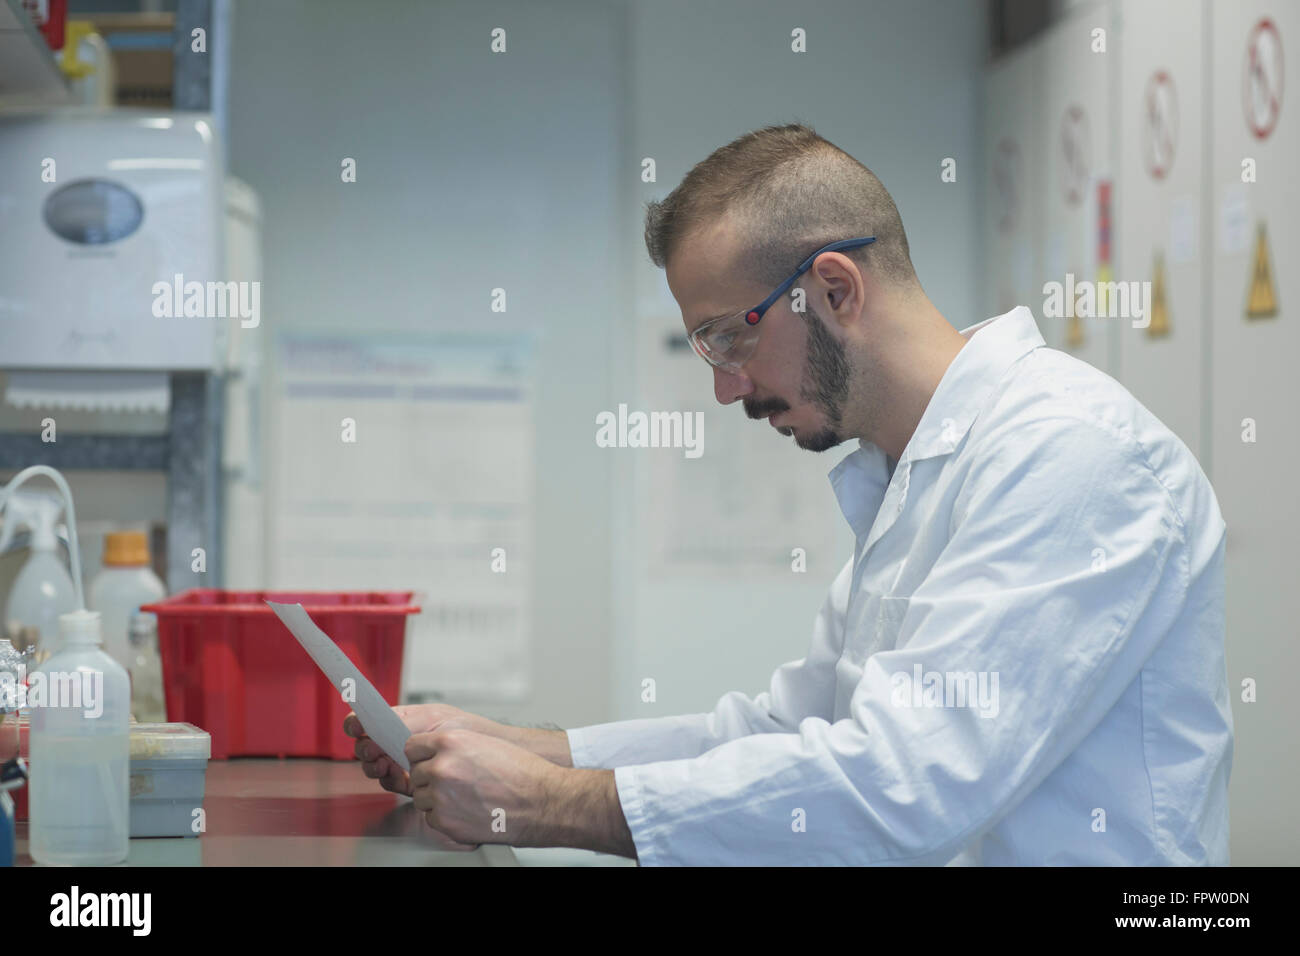 Young scientist working in a pharmacy laboratory, Freiburg Im Breisgau, Baden-Württemberg, Germany - Stock Image